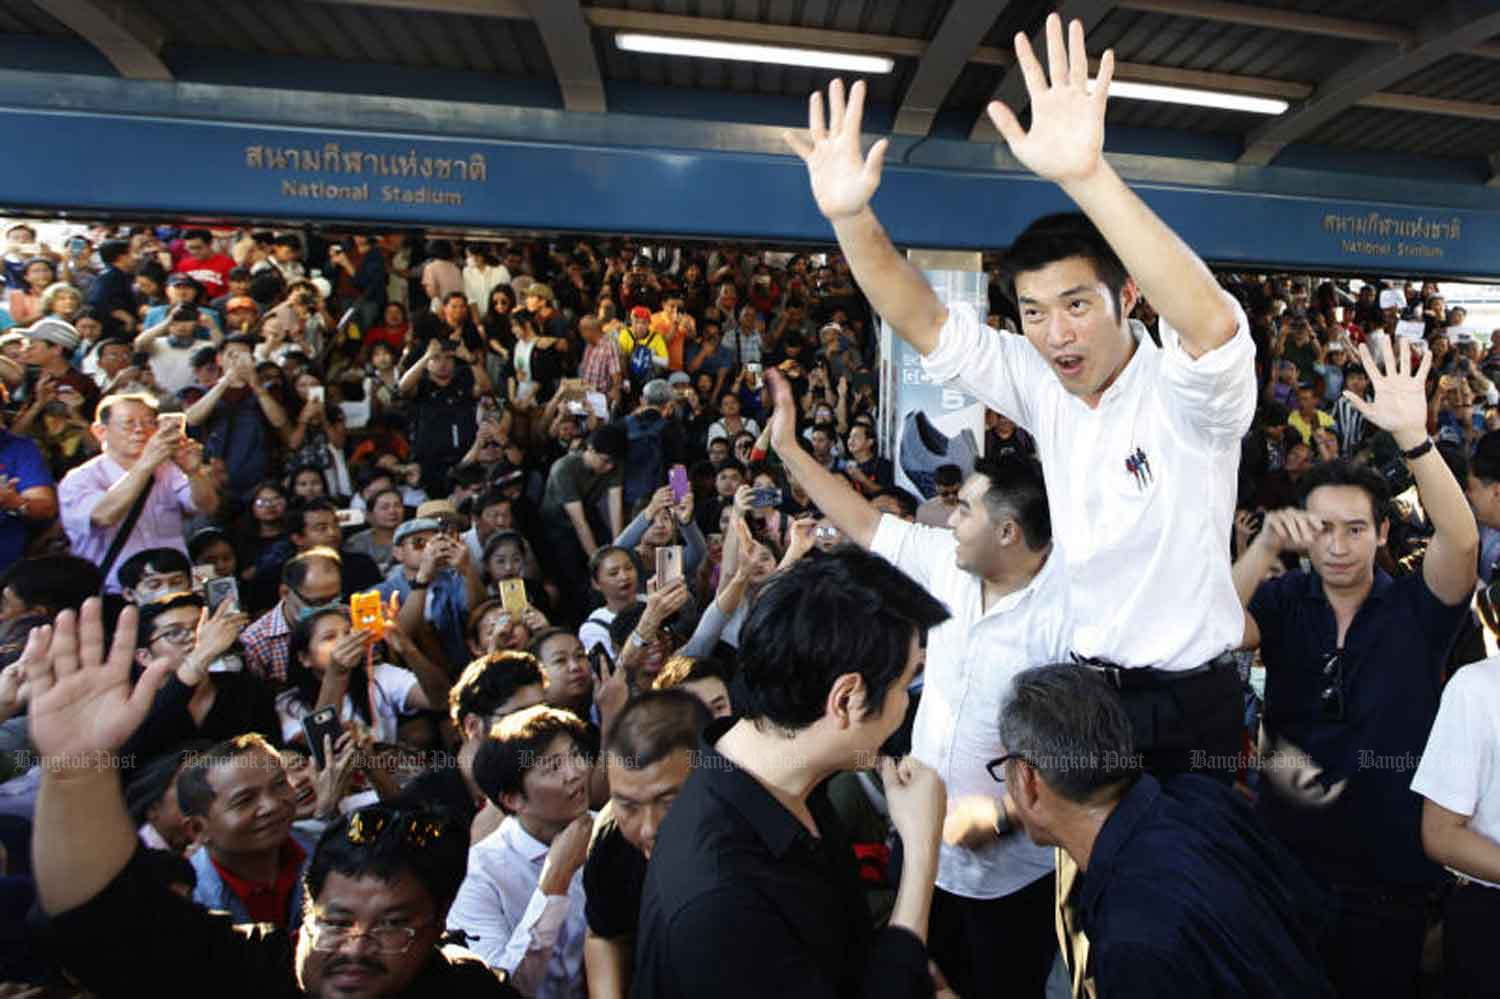 Future Forward Party leader Thanathorn Juangroongruangkit waves to party supporters who answered his call to join a gathering on the skywalk over Pathumwan intersection to voice dissent against the government on Dec 14. (Photo by Wichan Charoenkiatpakul)